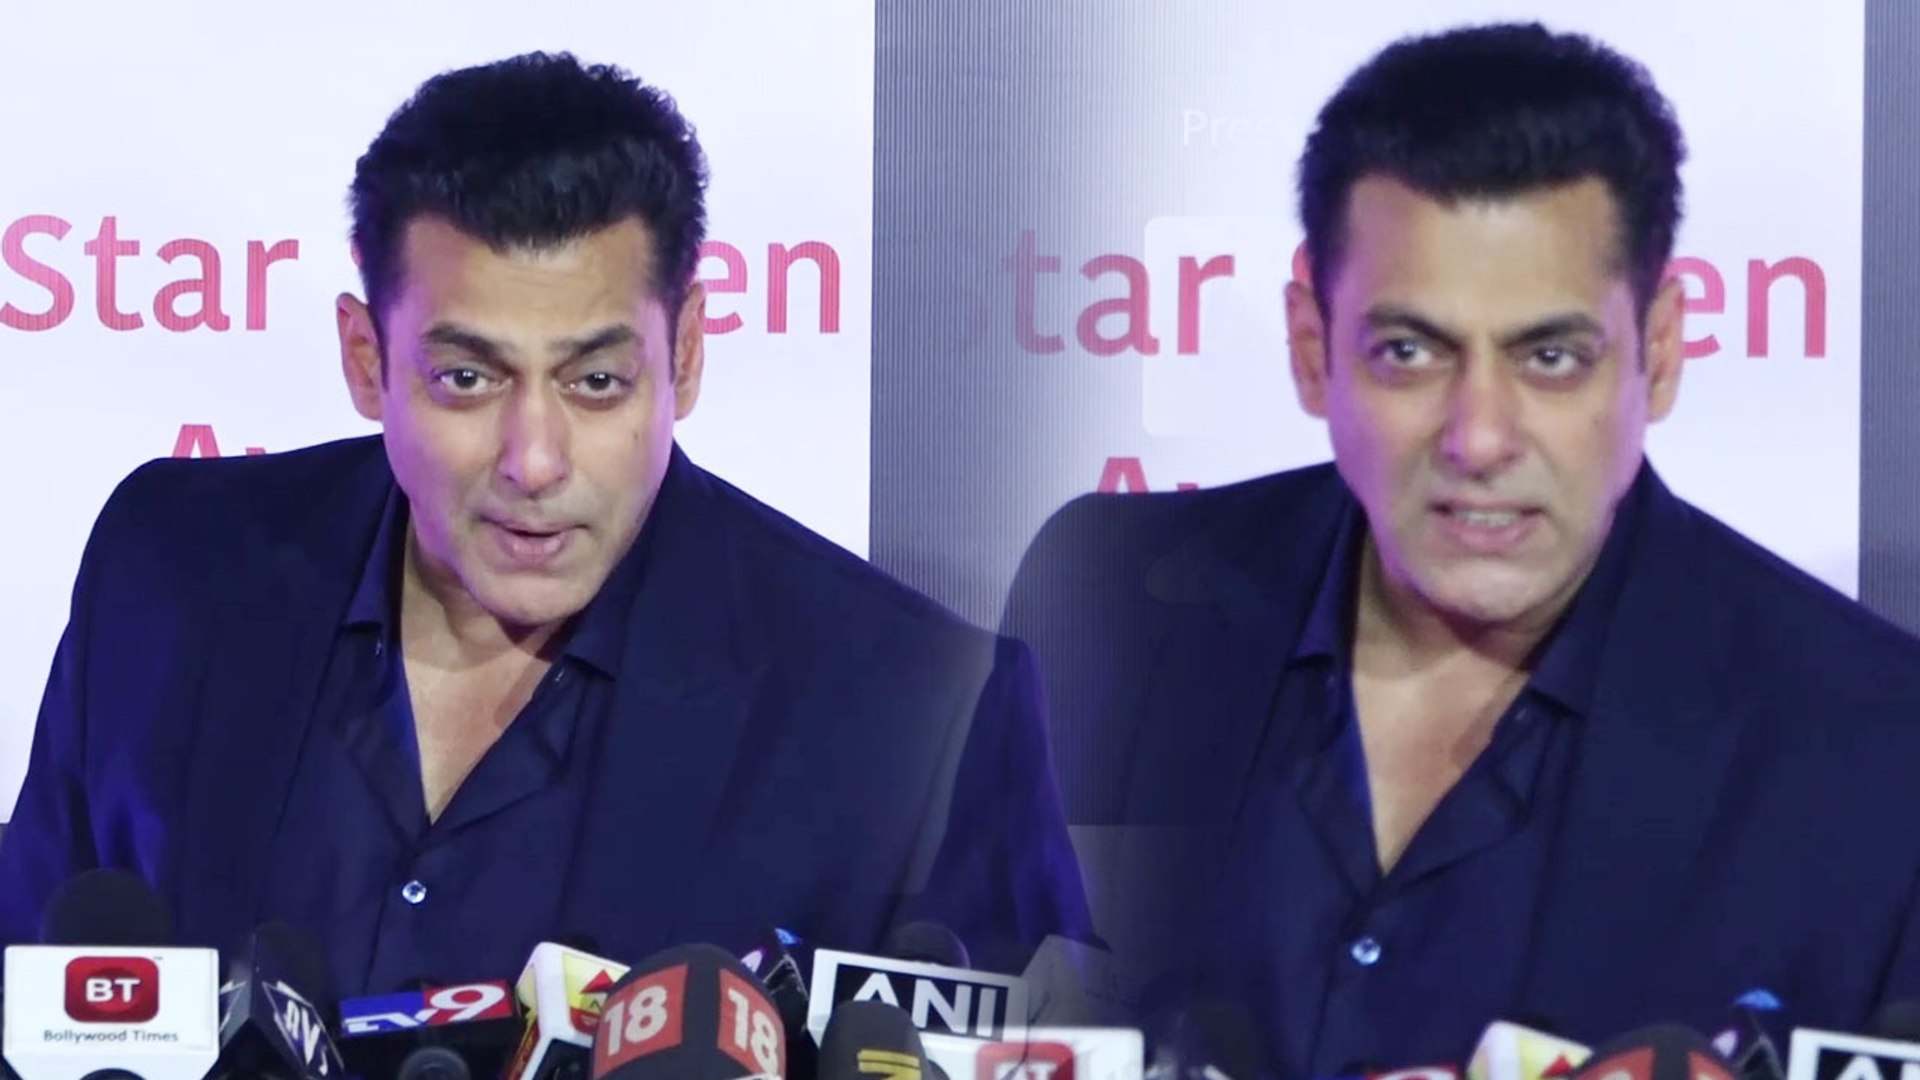 Salman Khan's fun moment with media during Star Screen Awards 2018; Watch Video | FilmiBeat